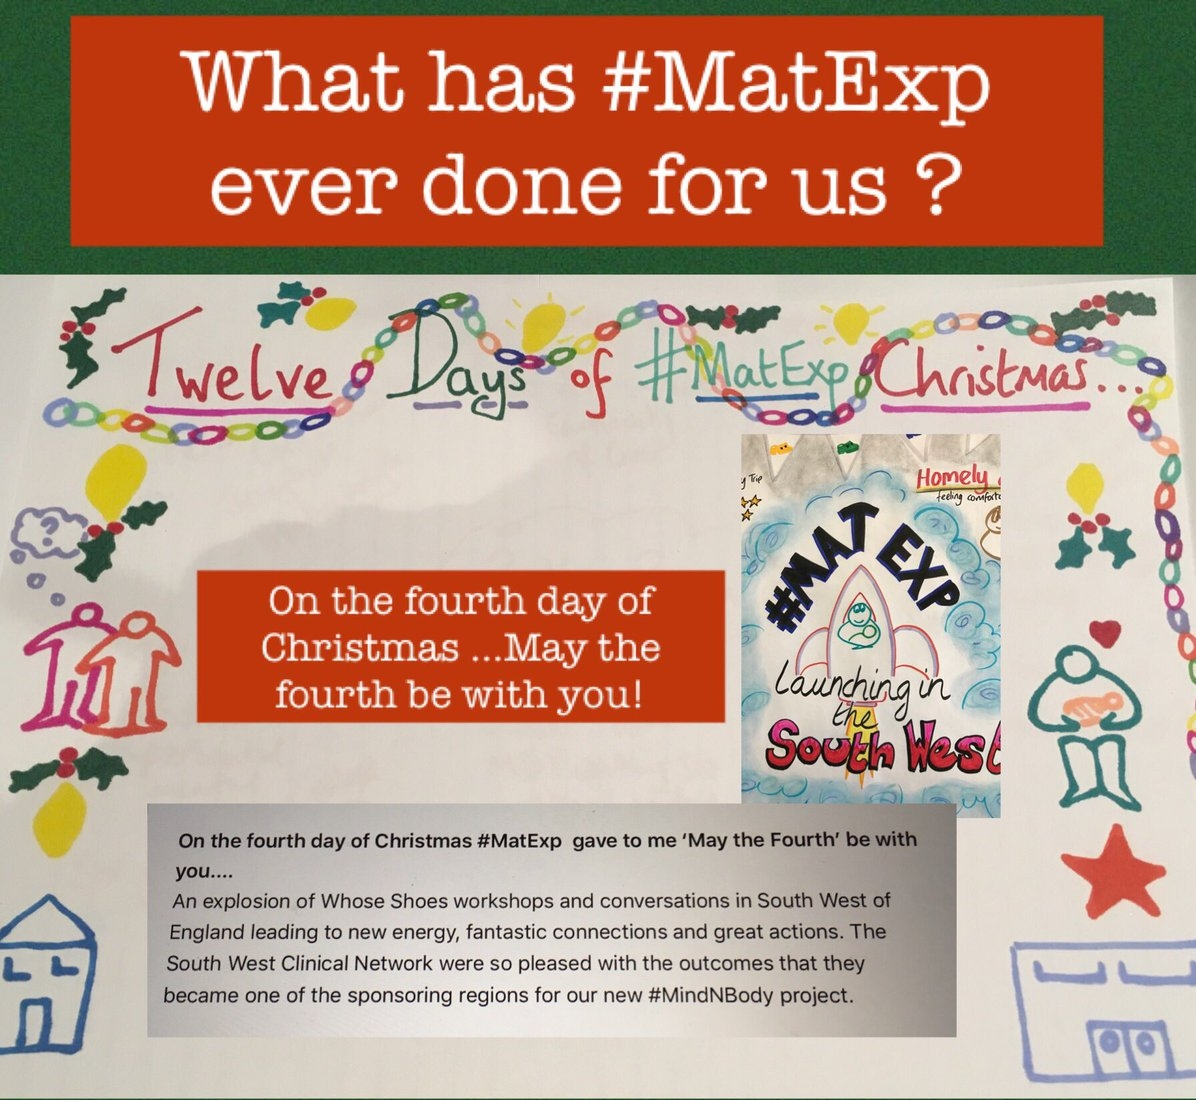 MatExp 12 days of Christmas Day 4